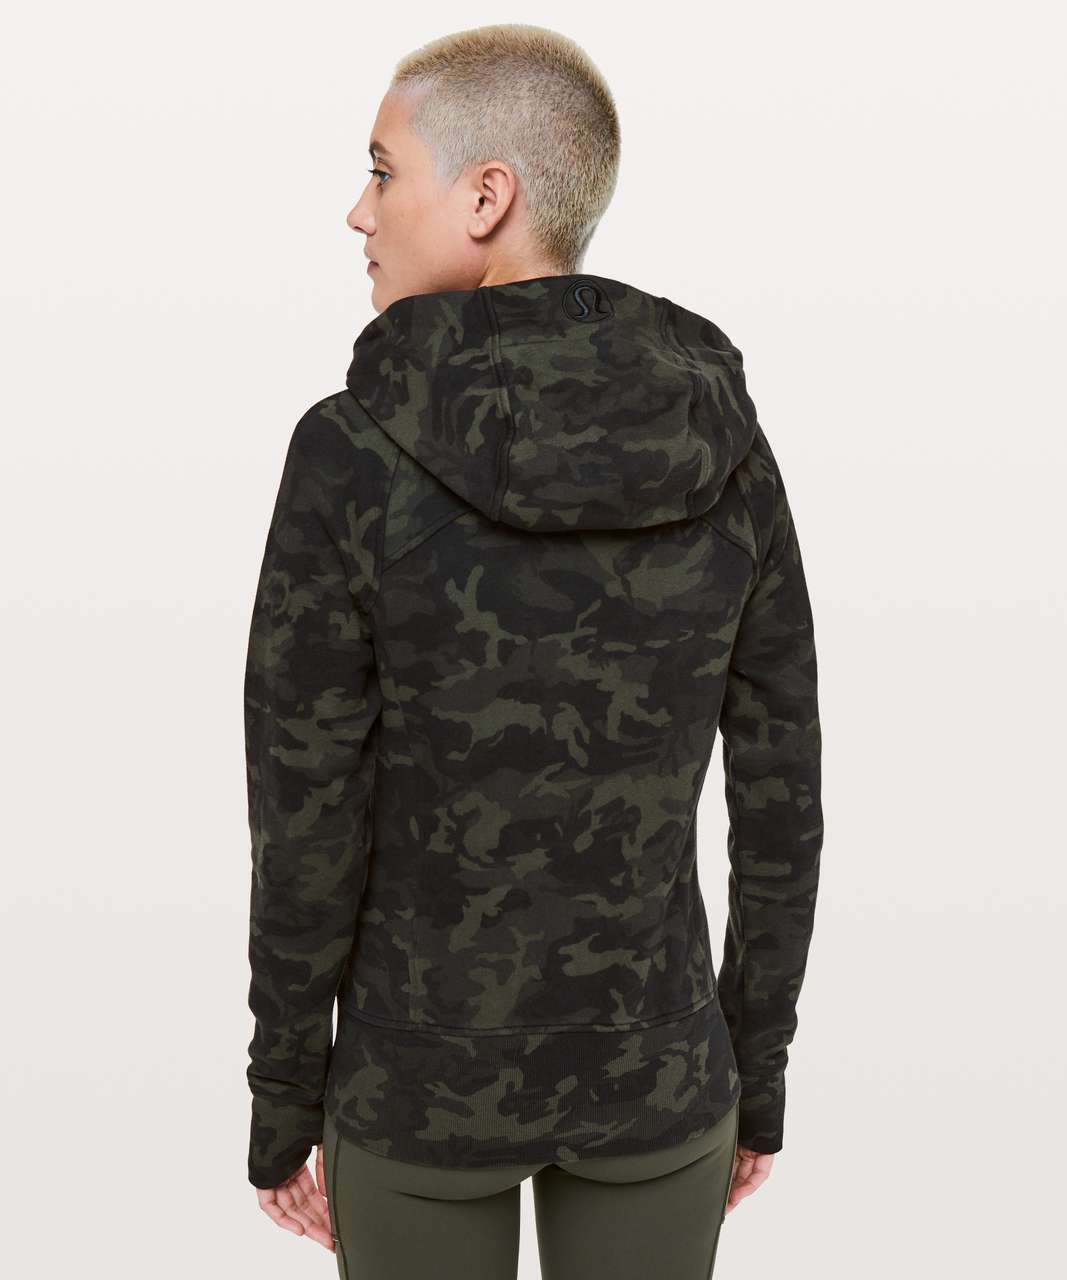 Lululemon Scuba Hoodie *Light Cotton Fleece - Incognito Camo Multi Gator Green